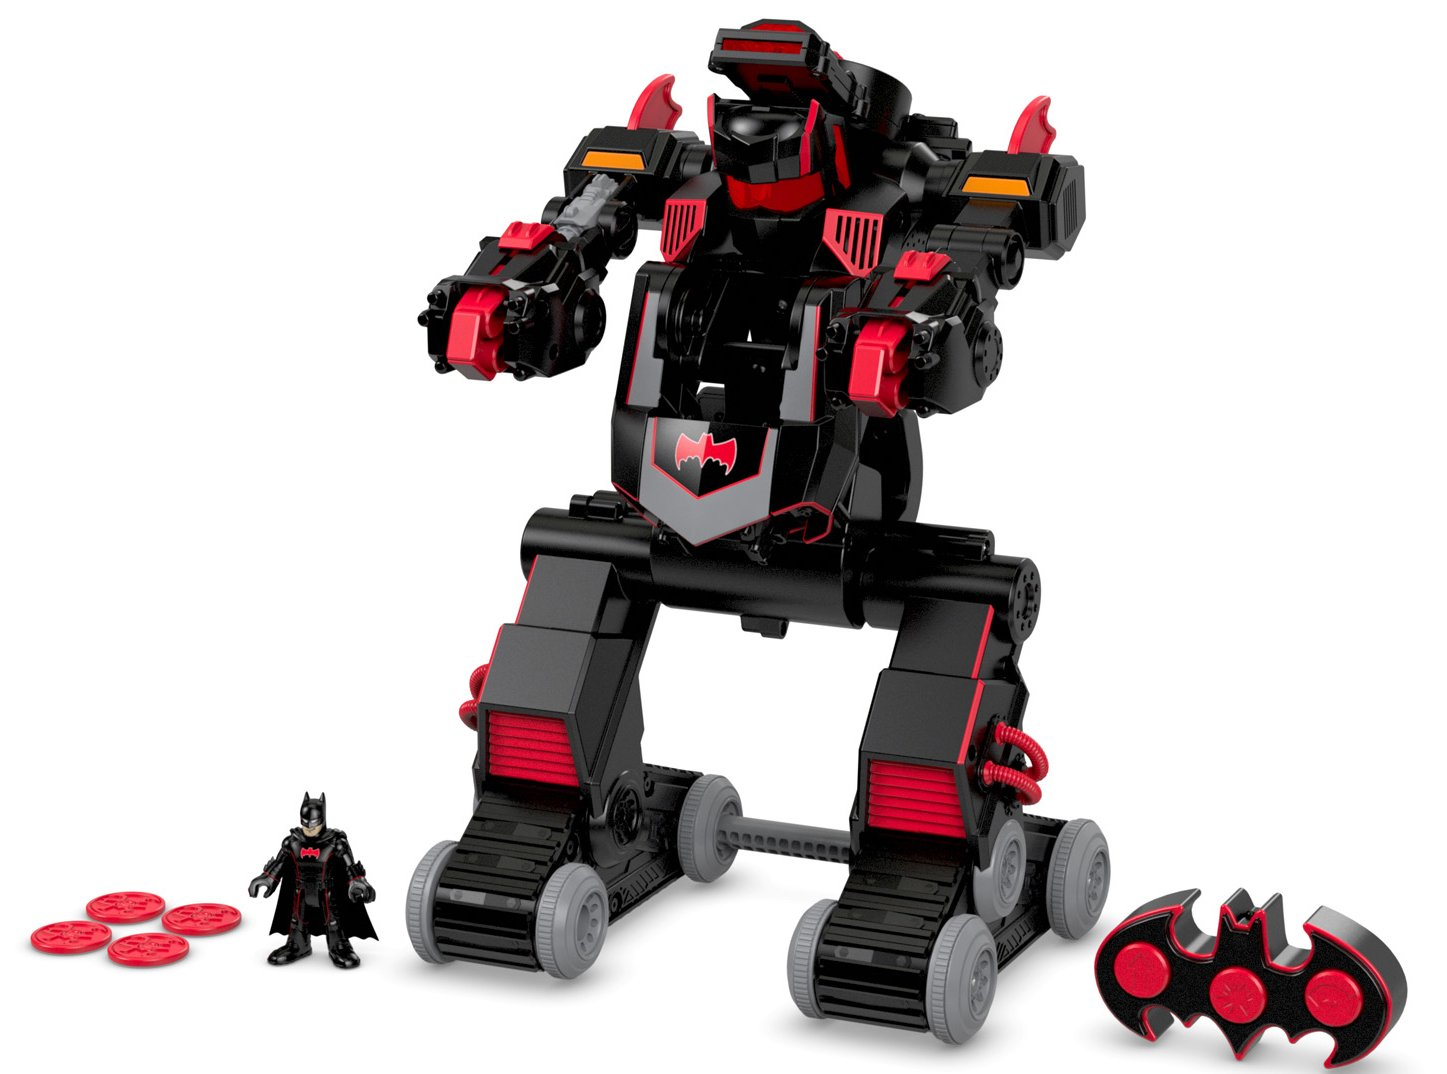 Top 7 Best Fighting Robot Toys Reviews in 2021 10